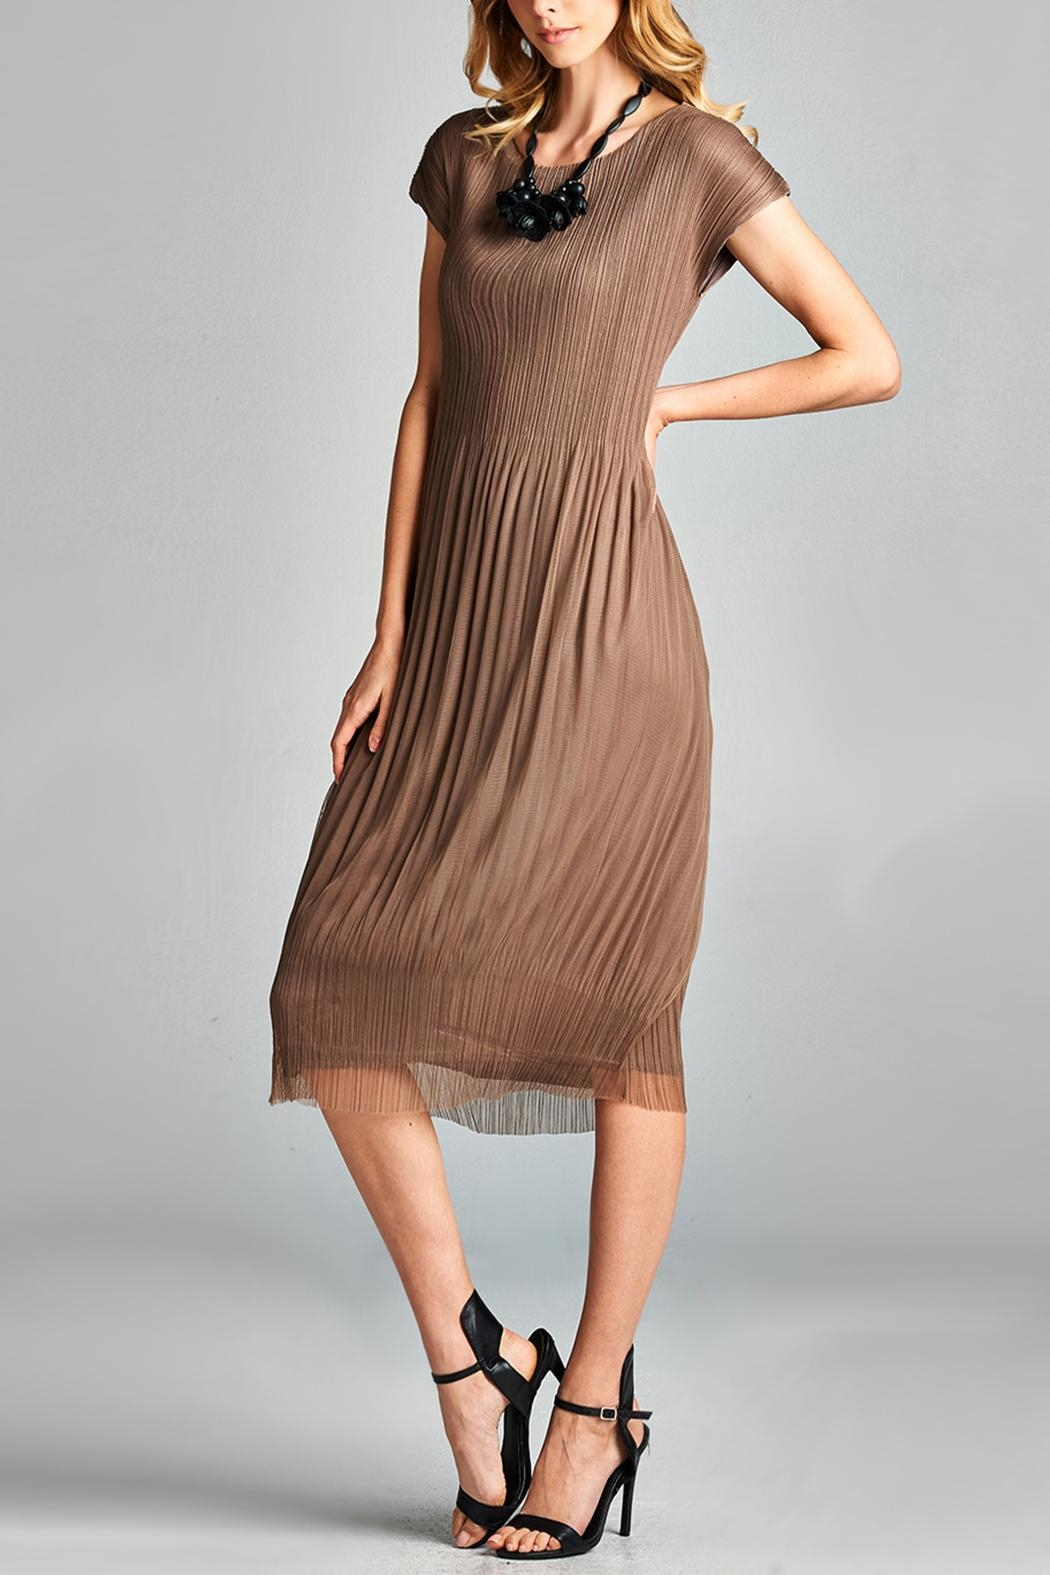 Nabisplace Cf Pleated Dress - Side Cropped Image